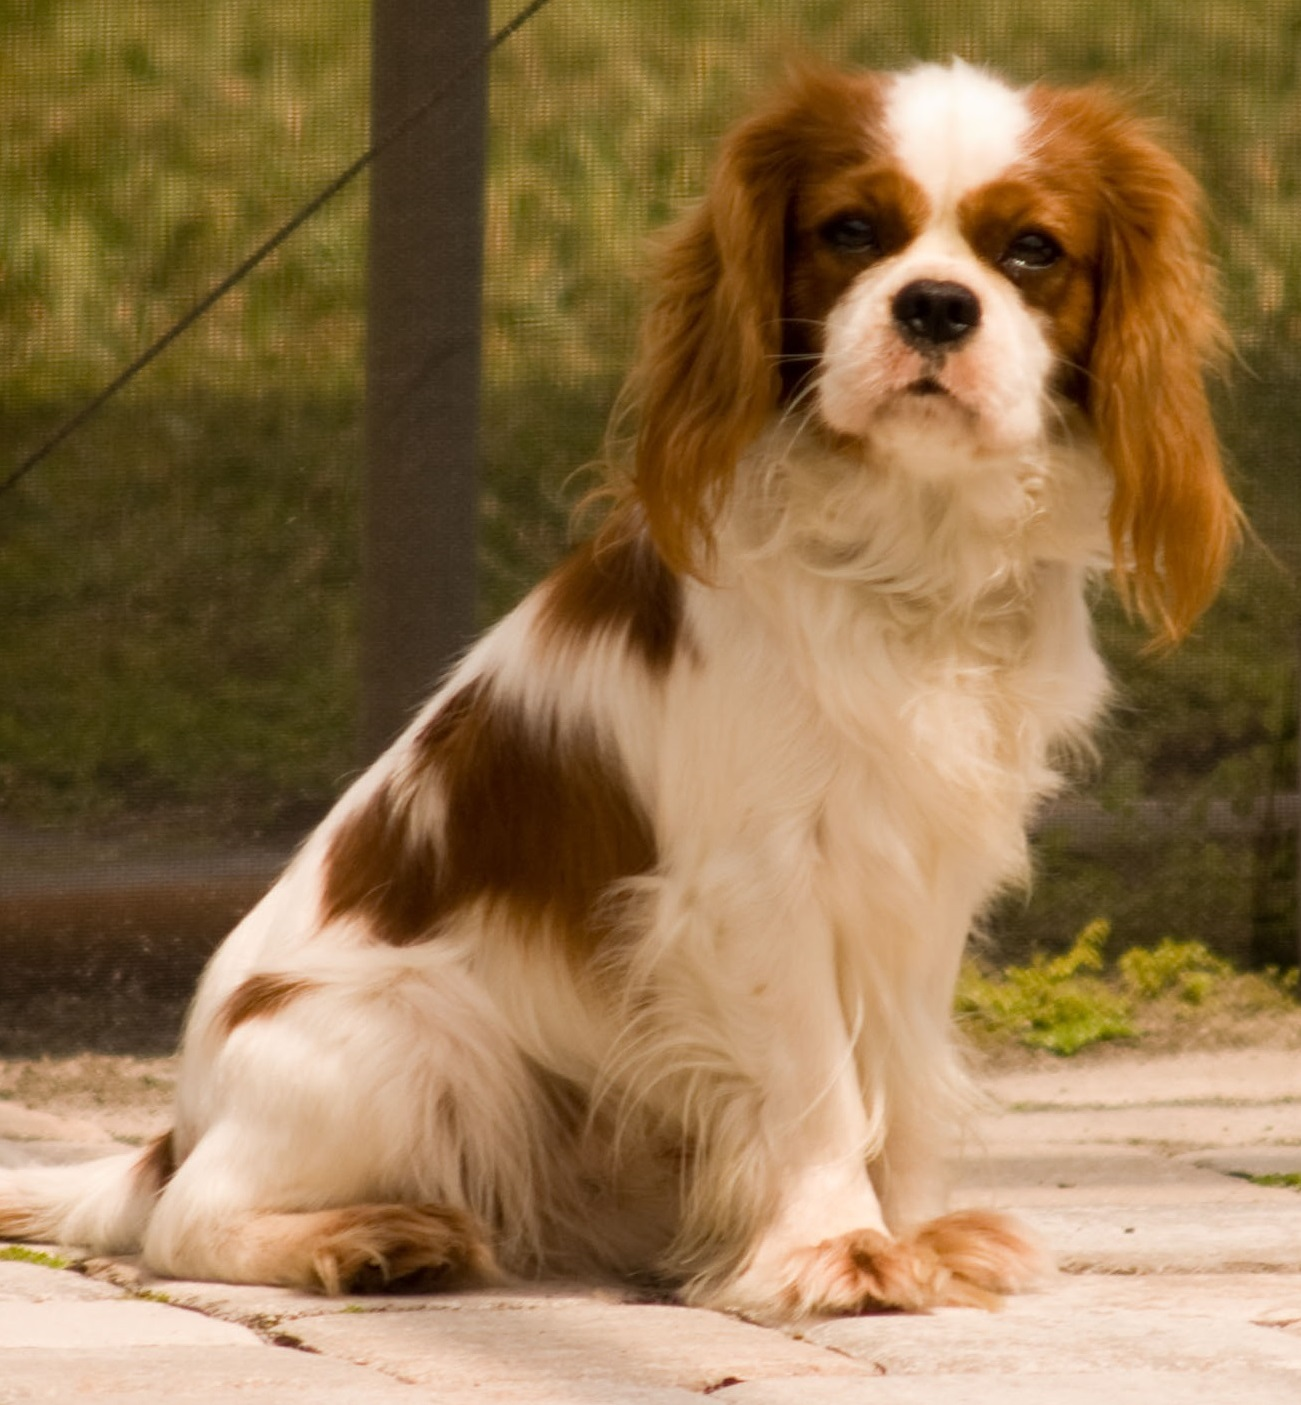 King Charles Spaniel HD wallpapers, Desktop wallpaper - most viewed